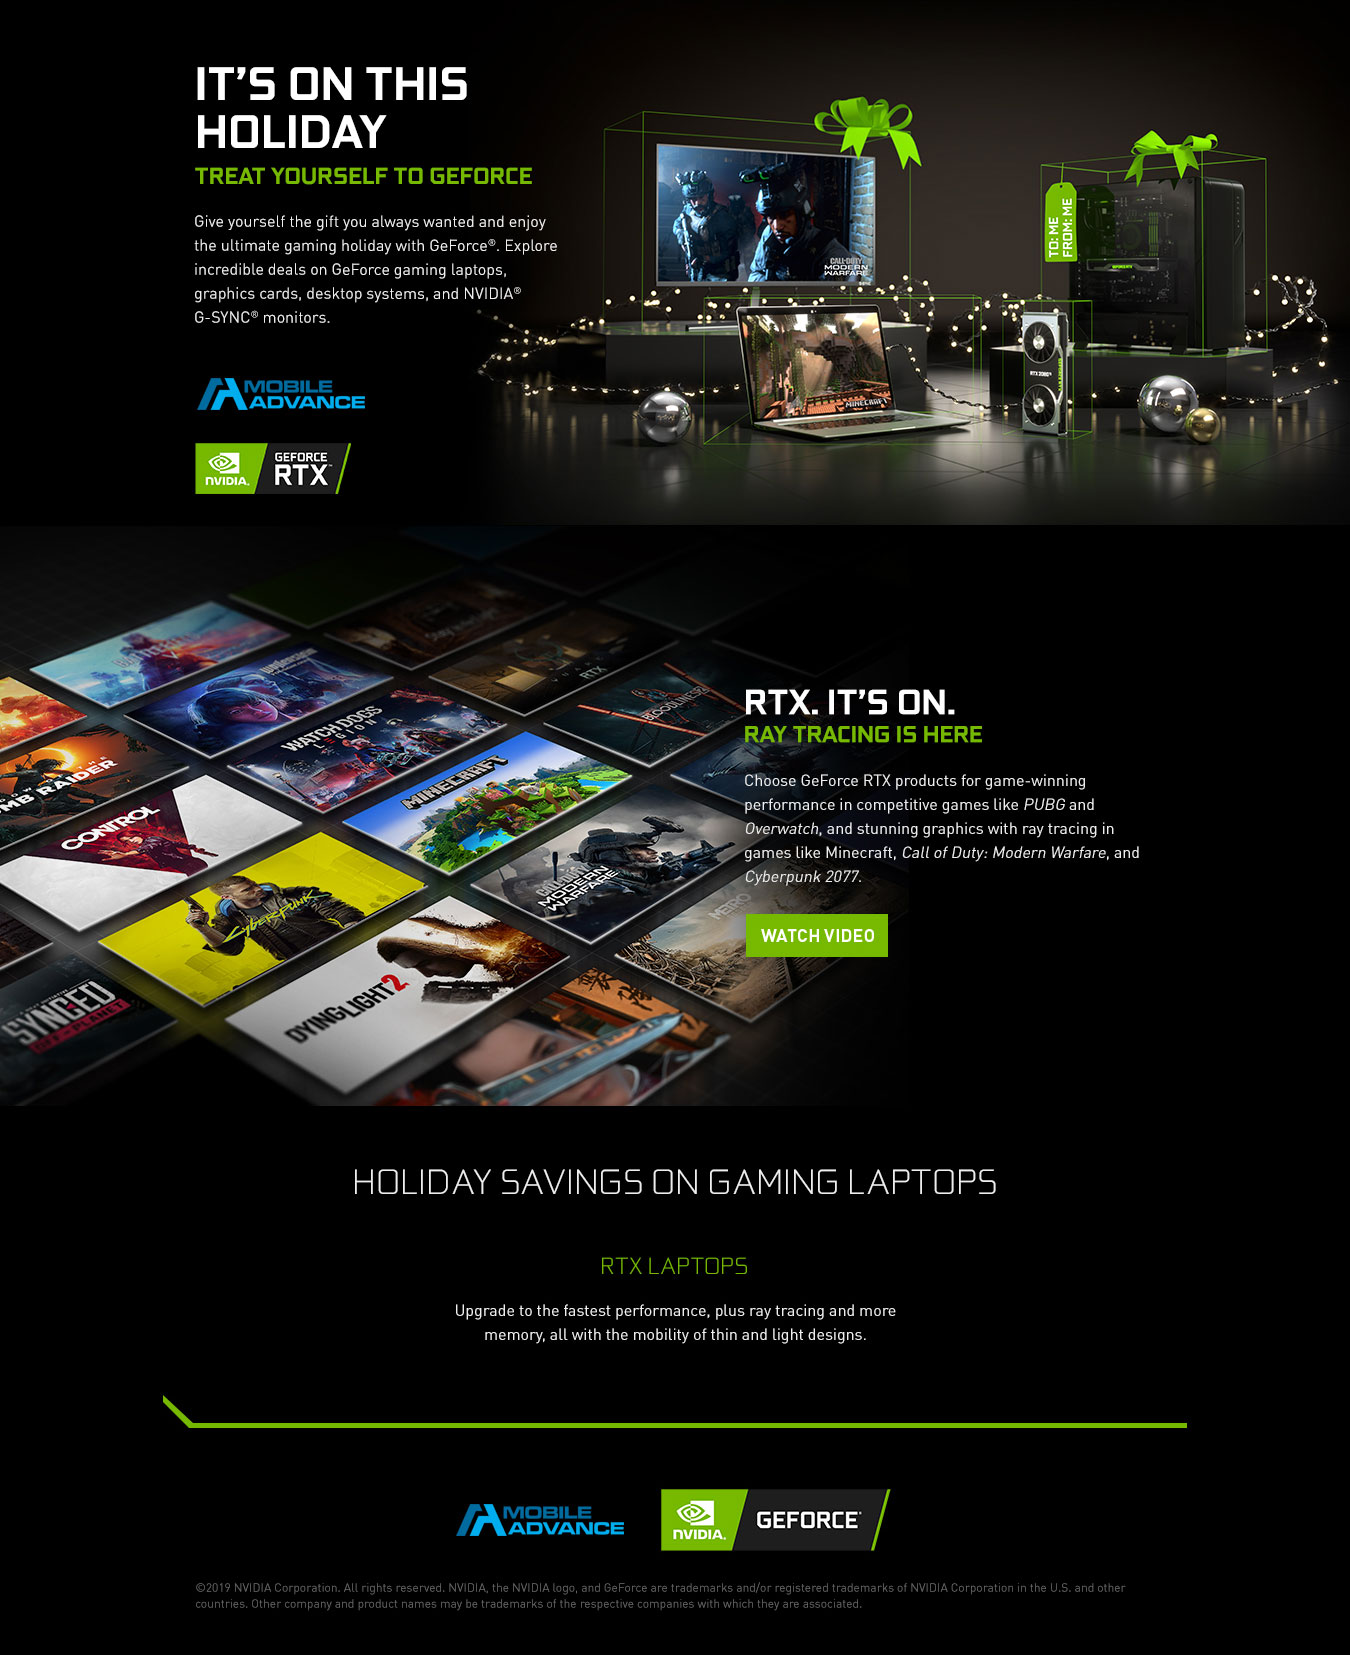 geforce-holiday-partner-lp-desktop-edit.jpg